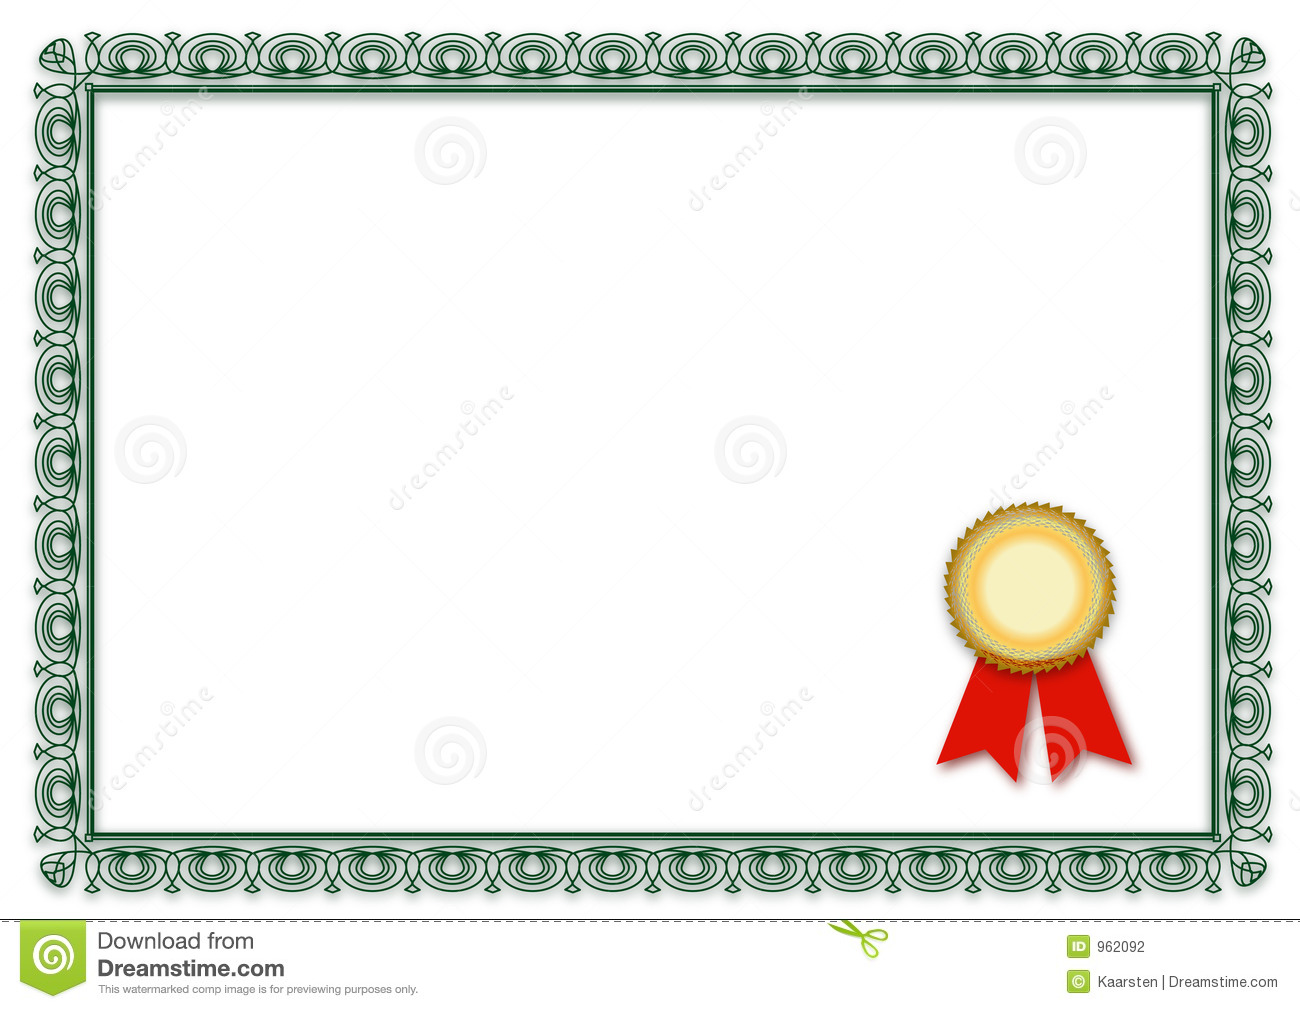 blank certificate. Ready to be filled with your individual text.